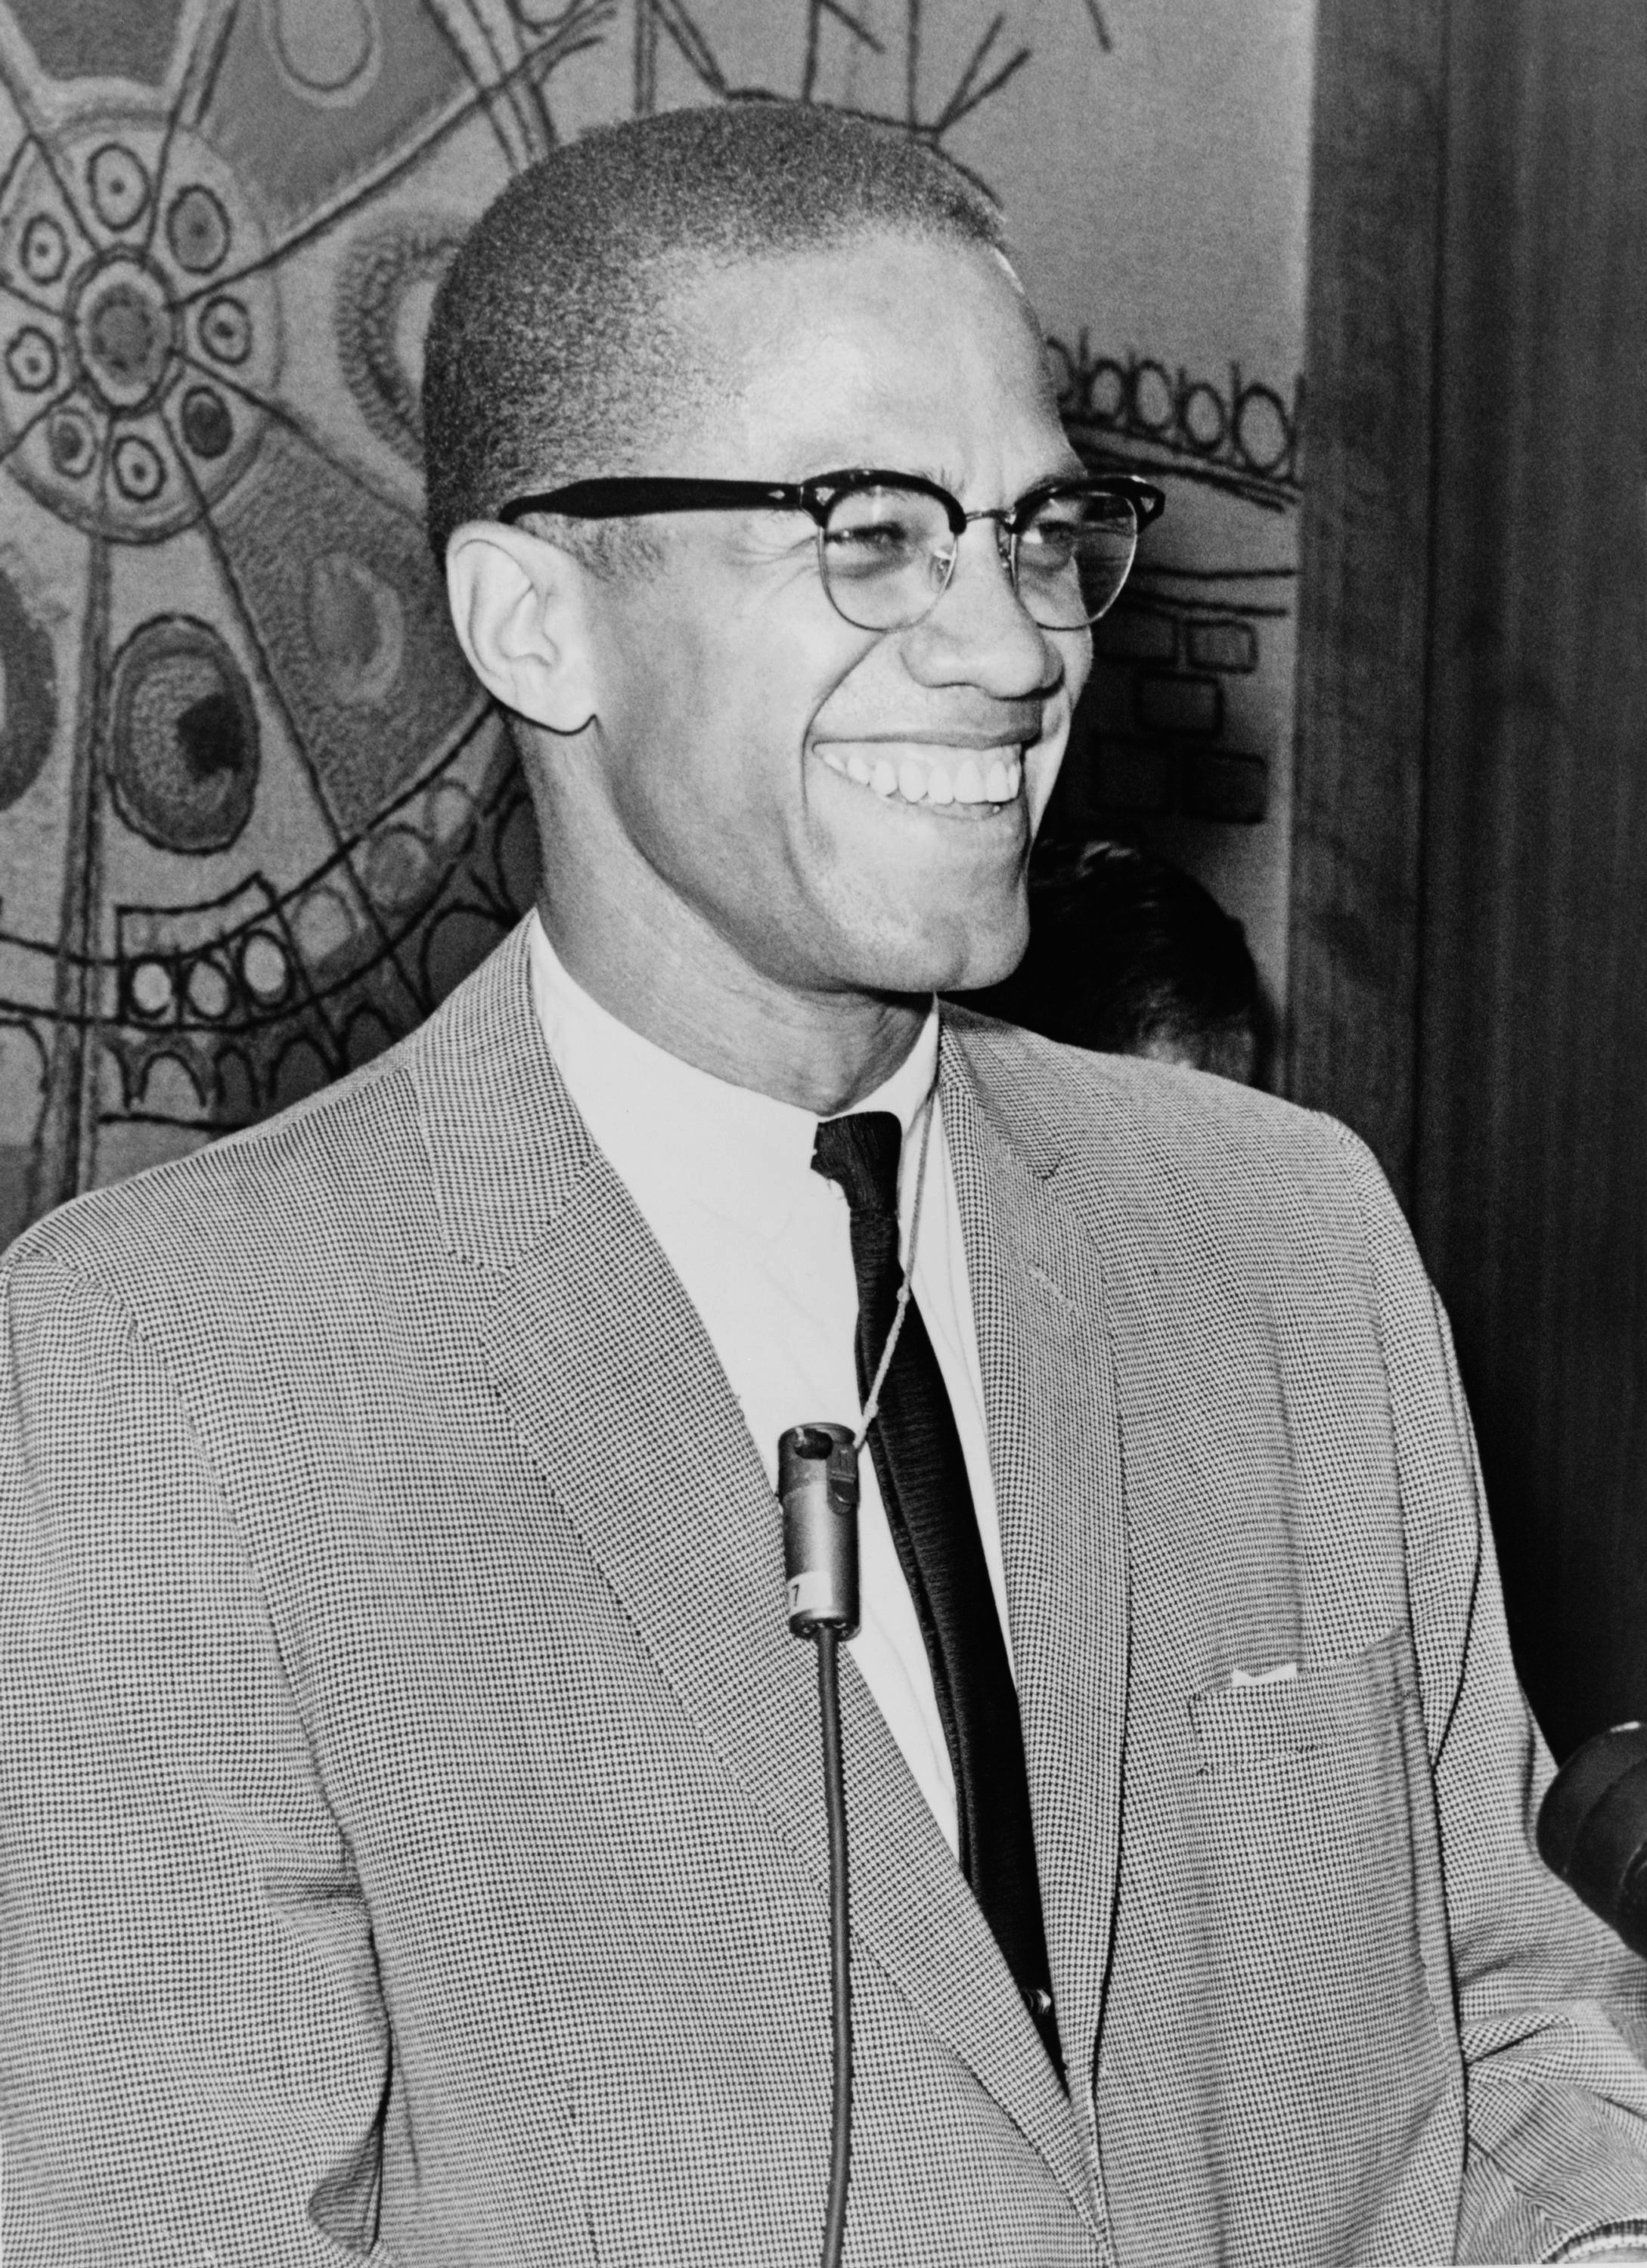 Malcolm X pictured in 1964.